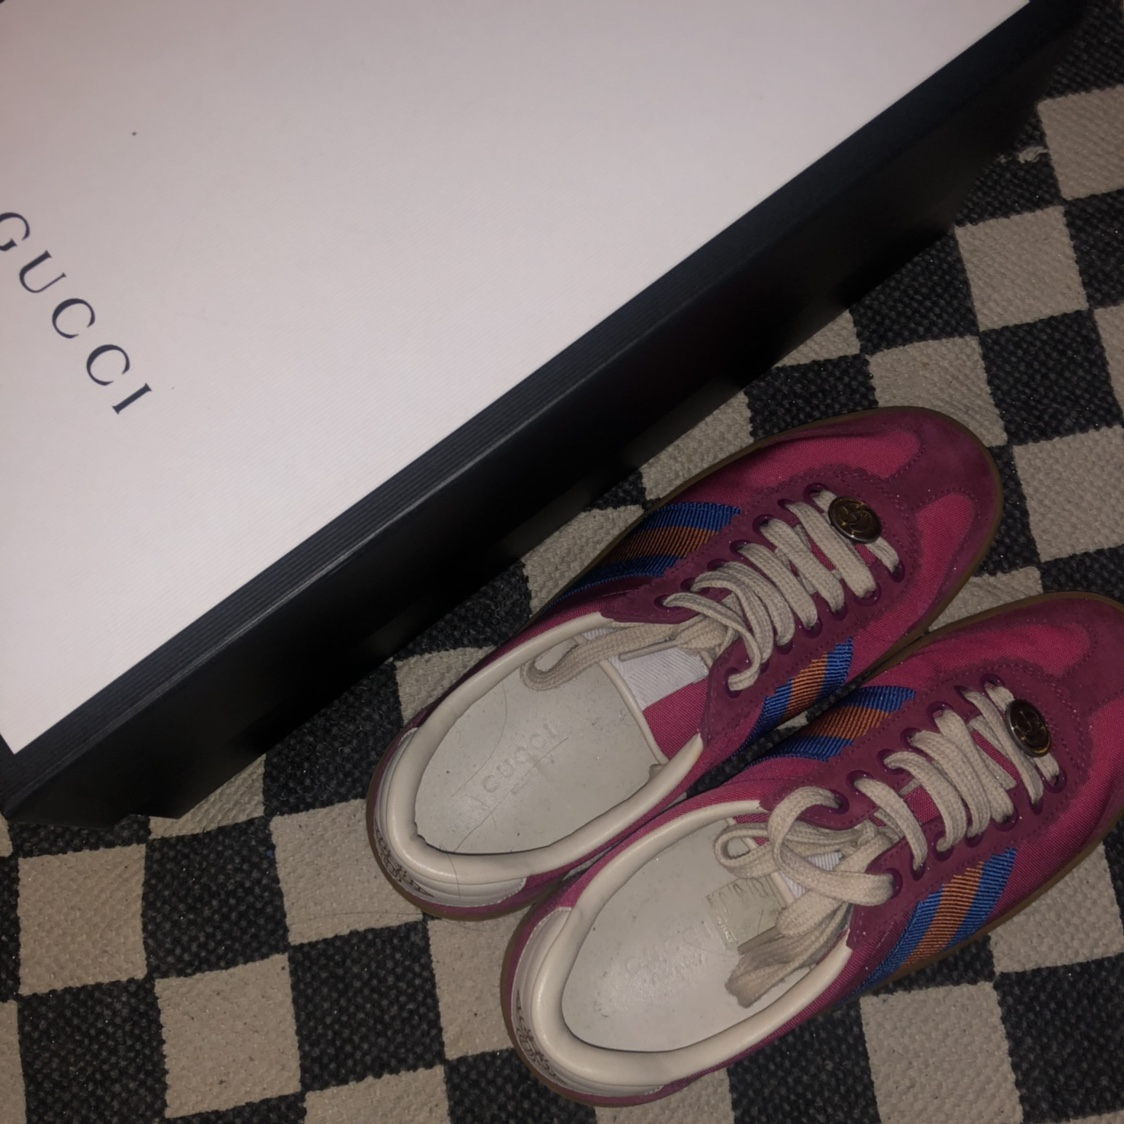 Gucci G74 leather sneaker with web